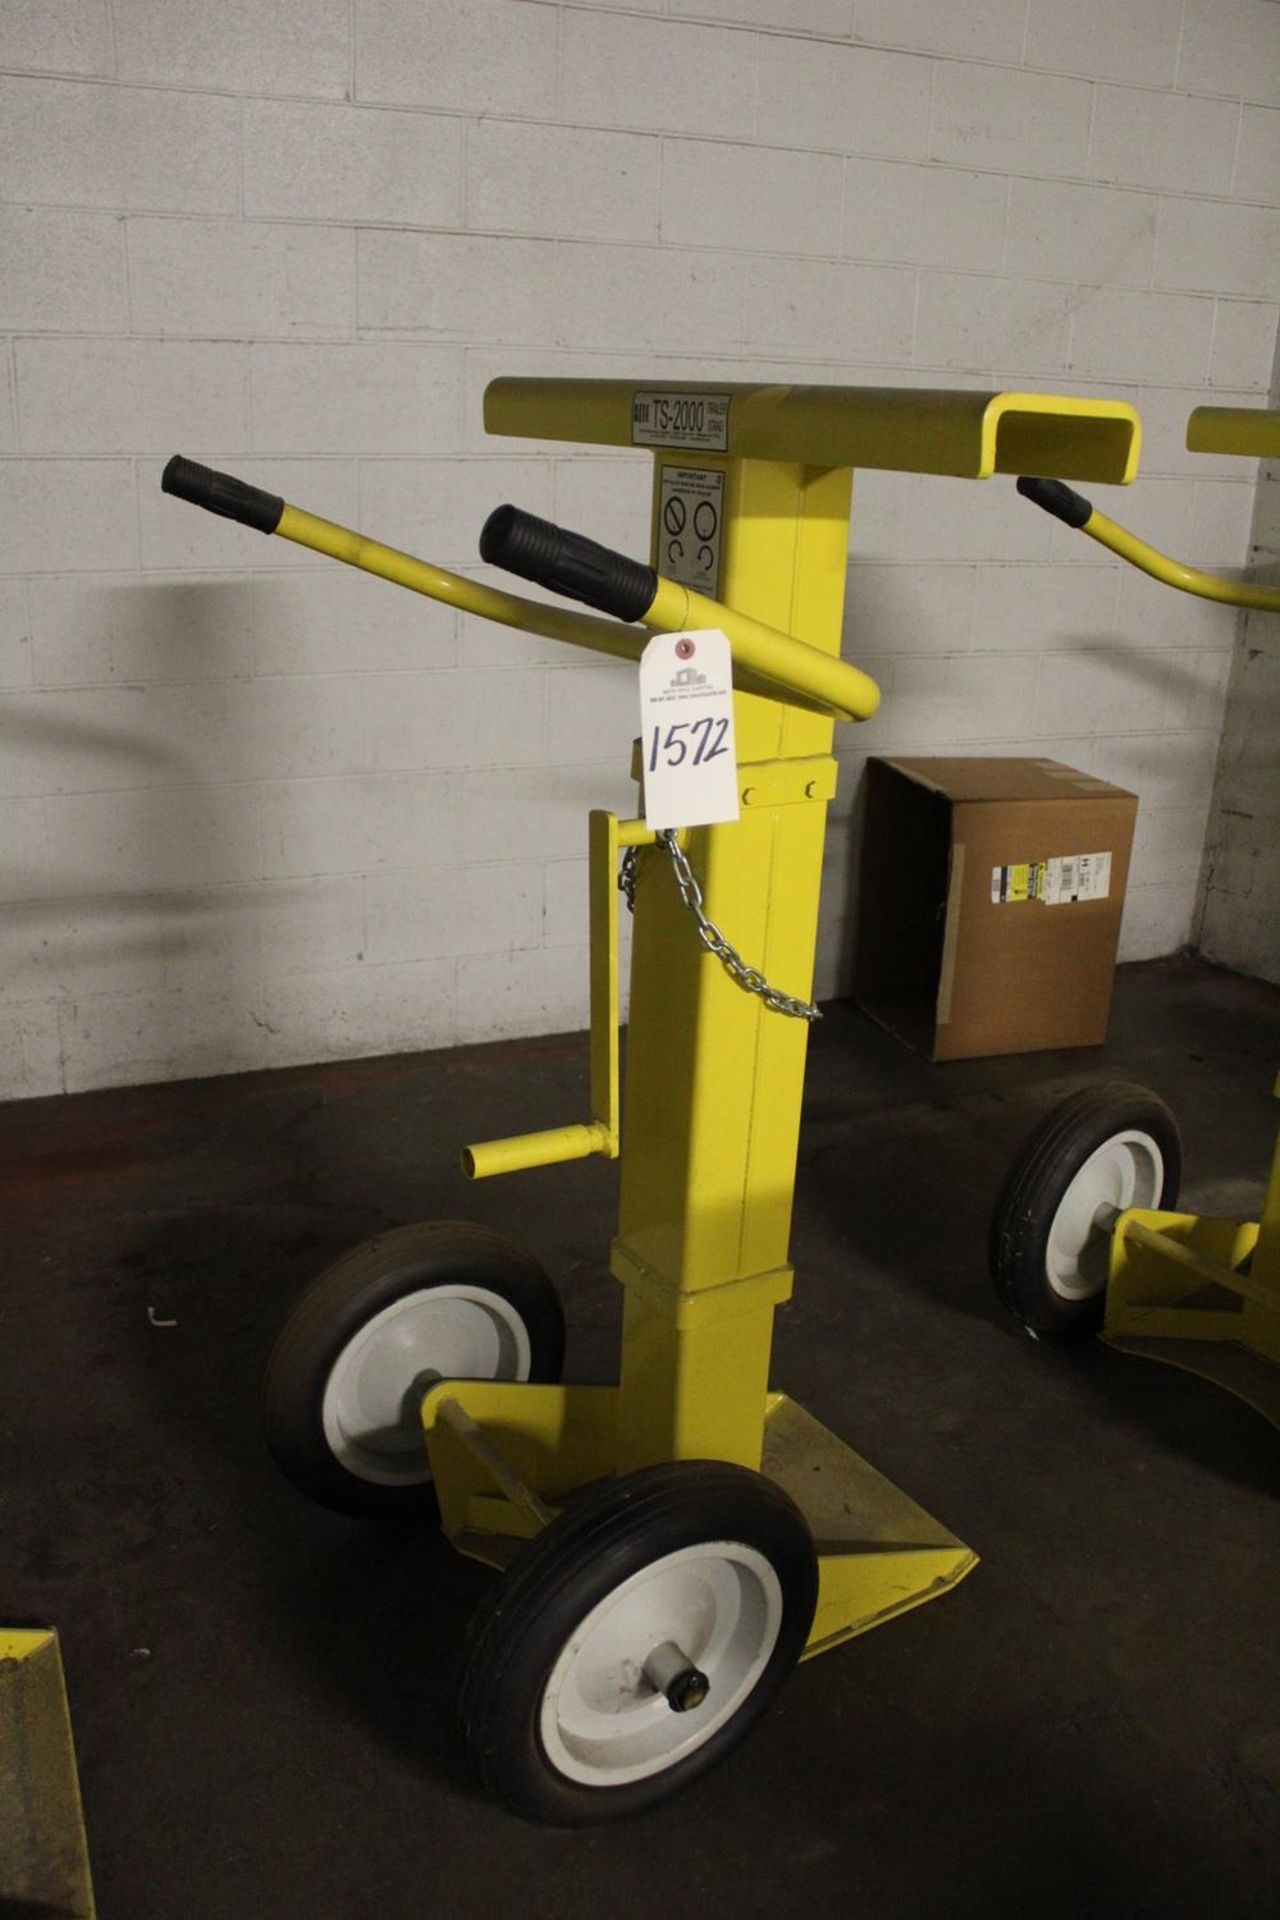 Lot 1572 - Rite Hite TS-2000 Trailer Stand - Subject to Bulk Bid Lot 15 | Rig Fee: Hand Carry or Contact Rigger